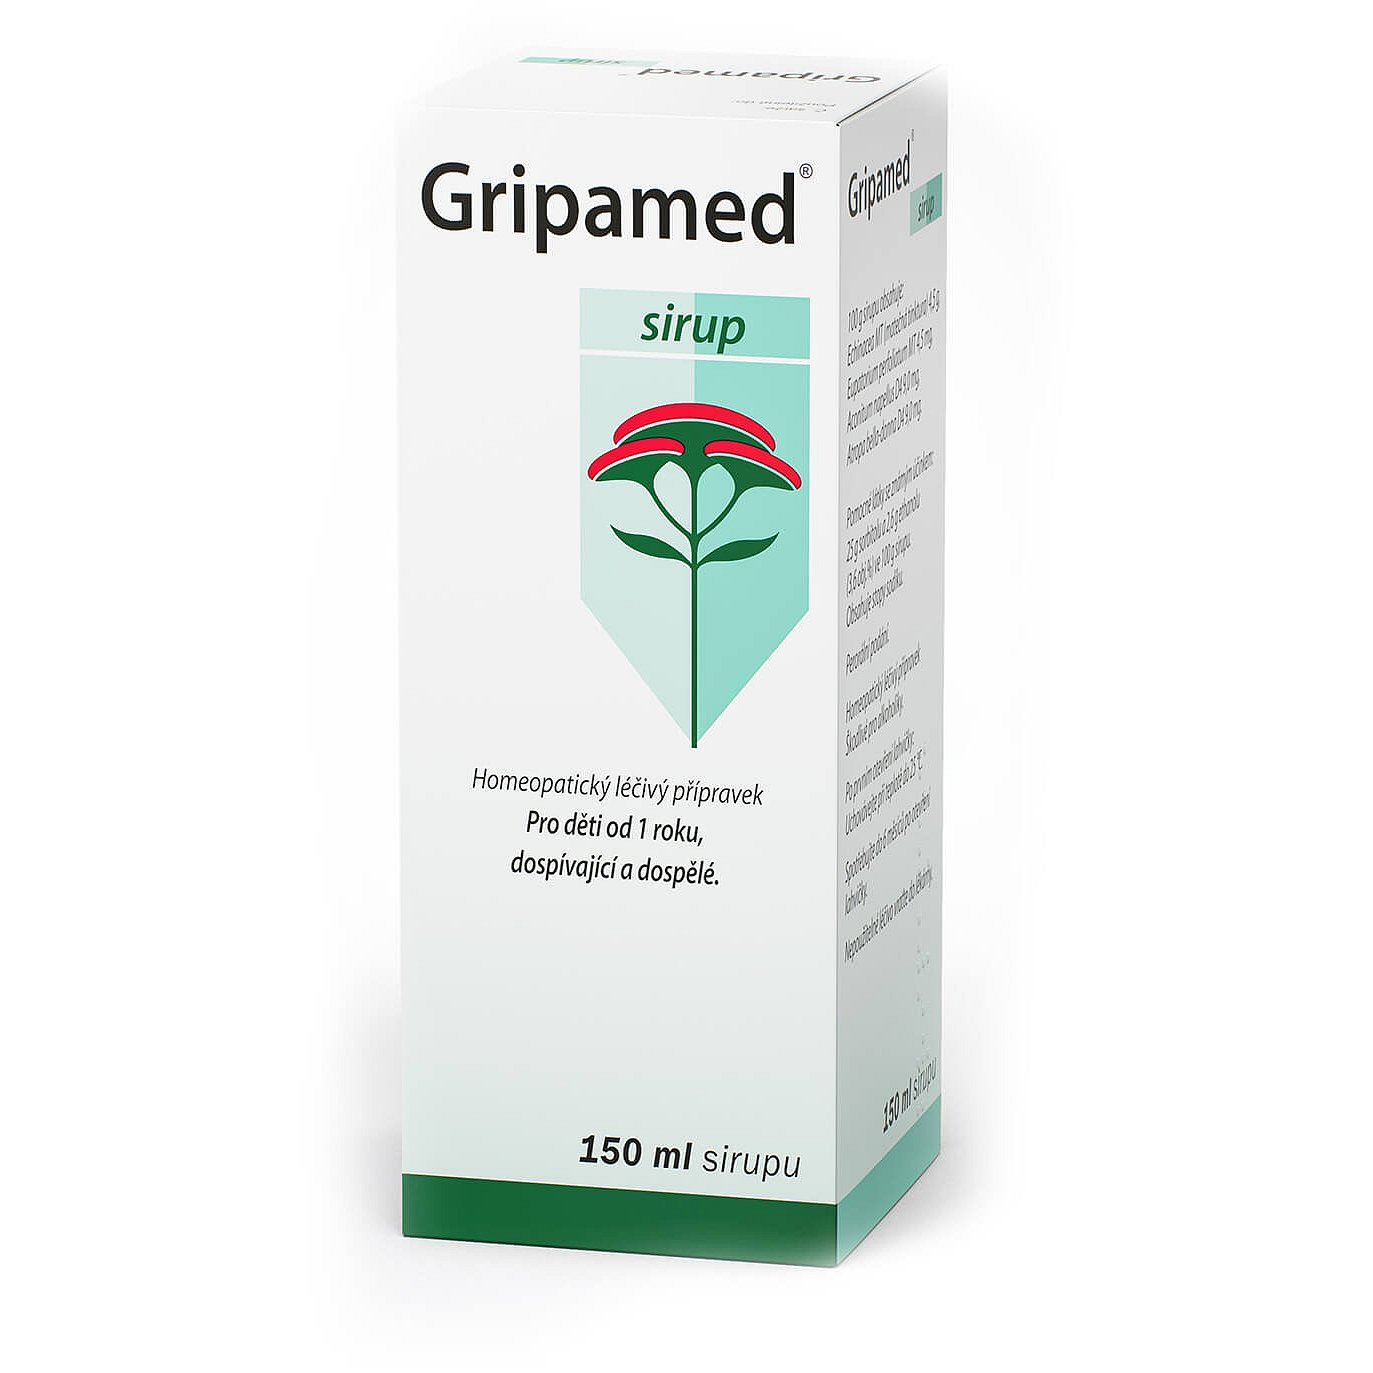 Gripamed sirup 150ml